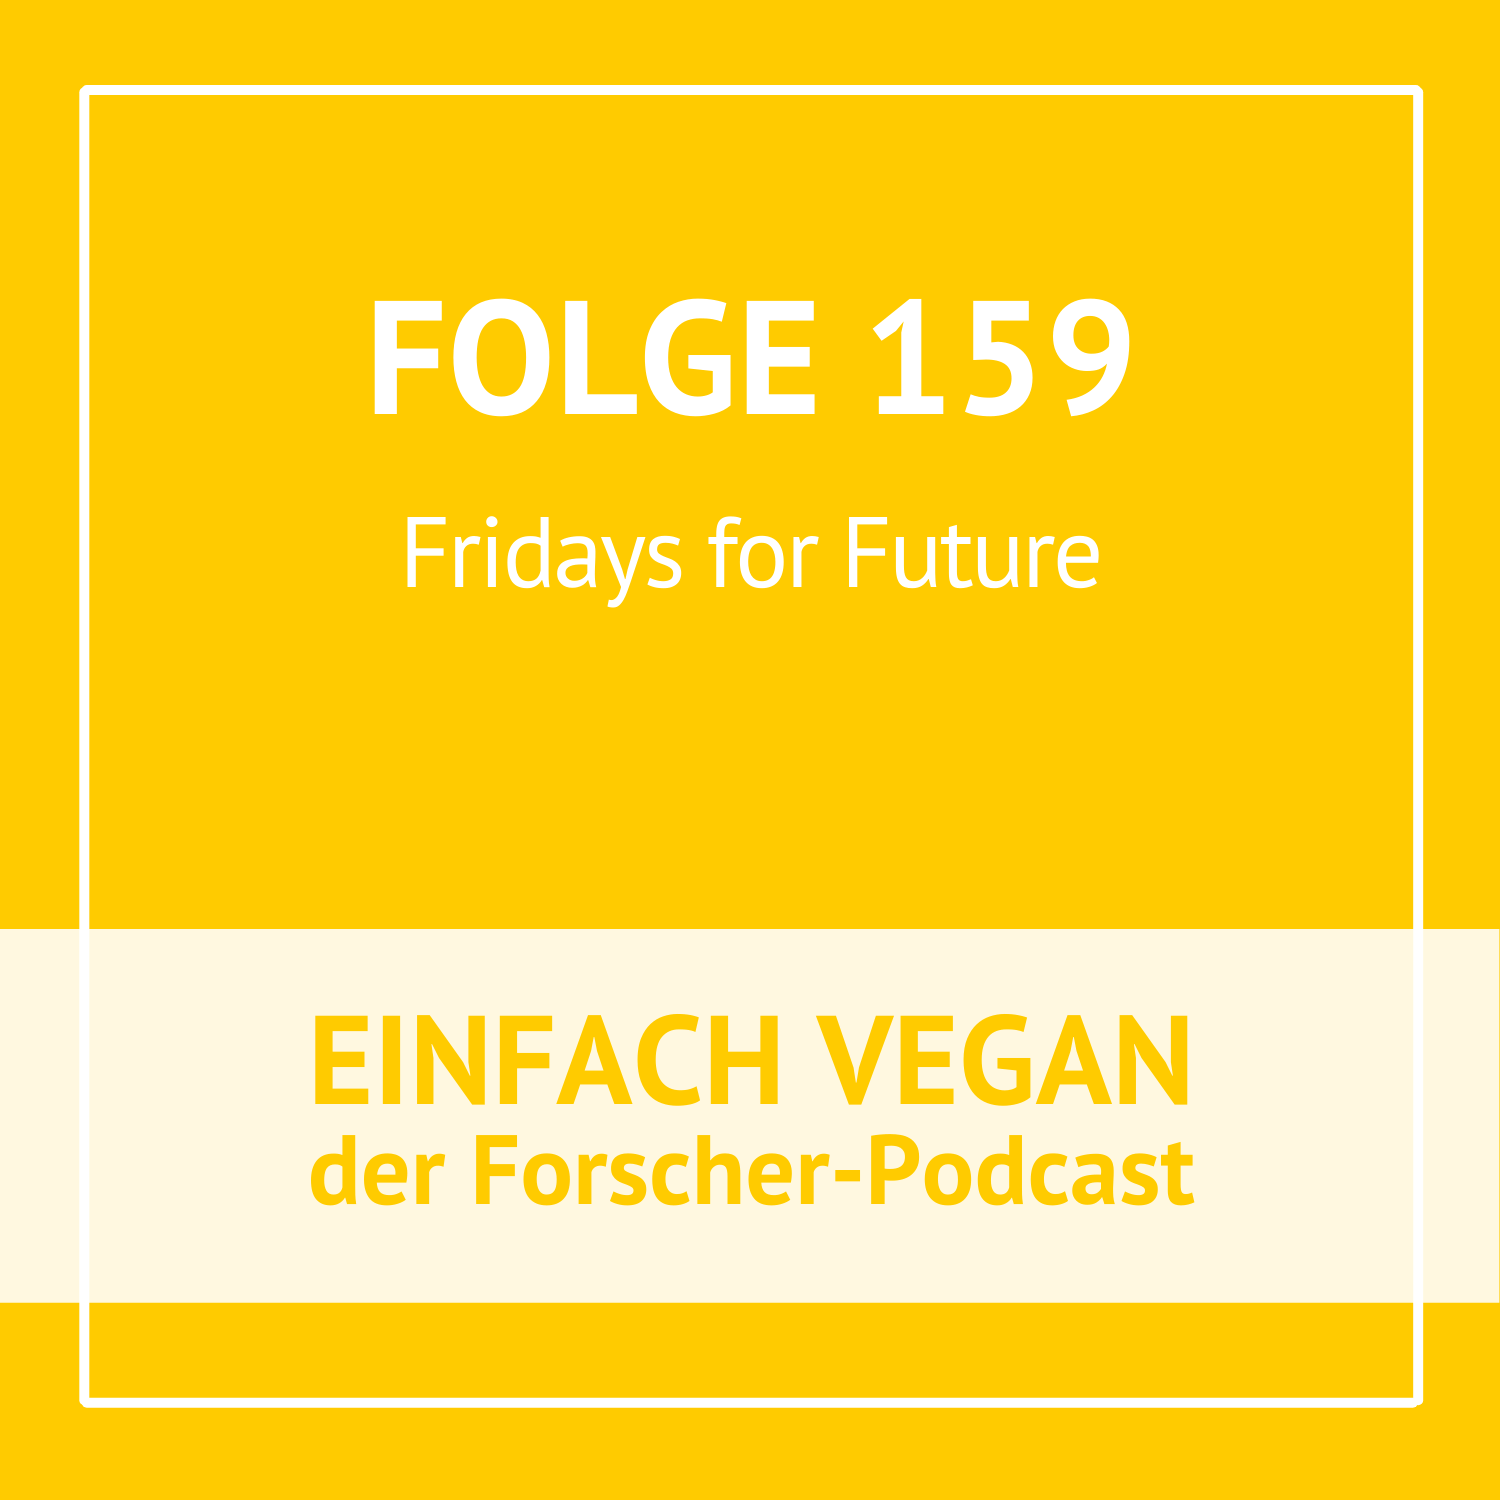 Folge 159 - Fridays for Future